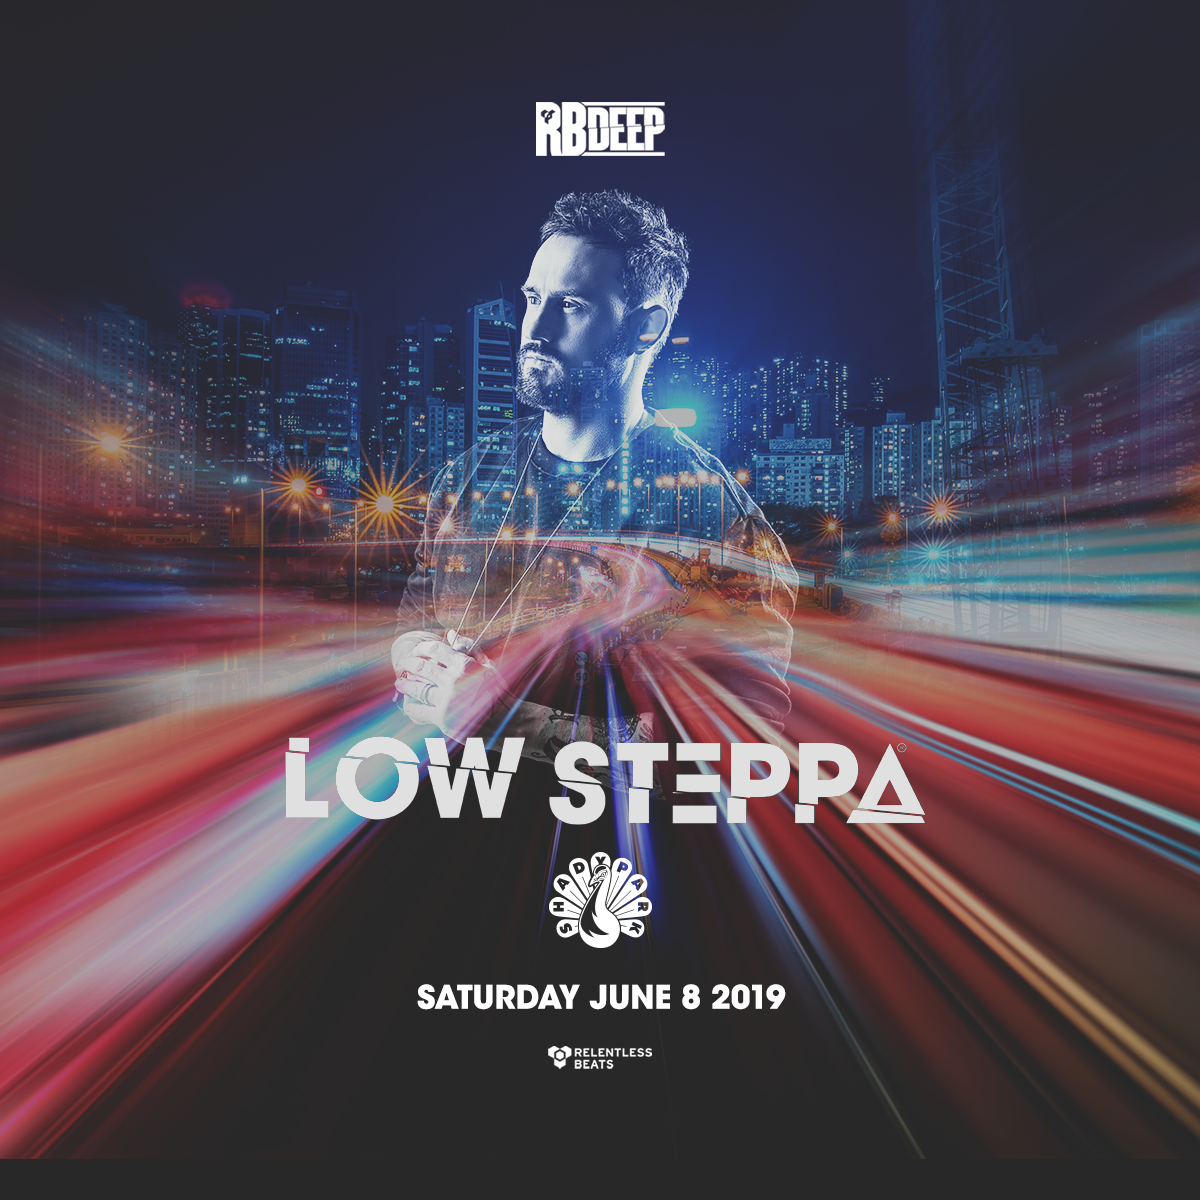 Flyer for Low Steppa